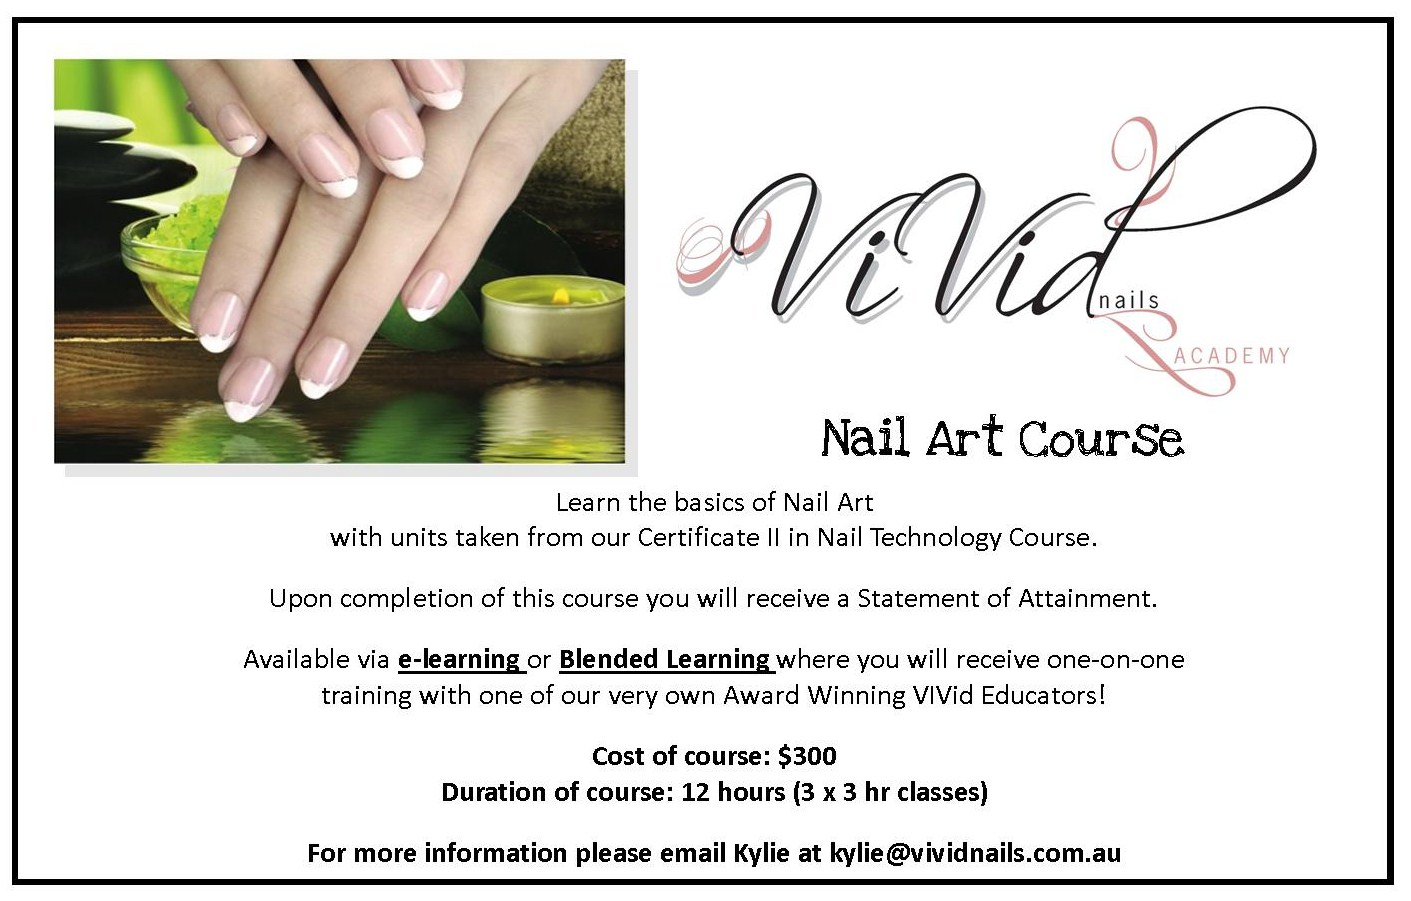 VIVid Nails - Academy: Nail Art Course...